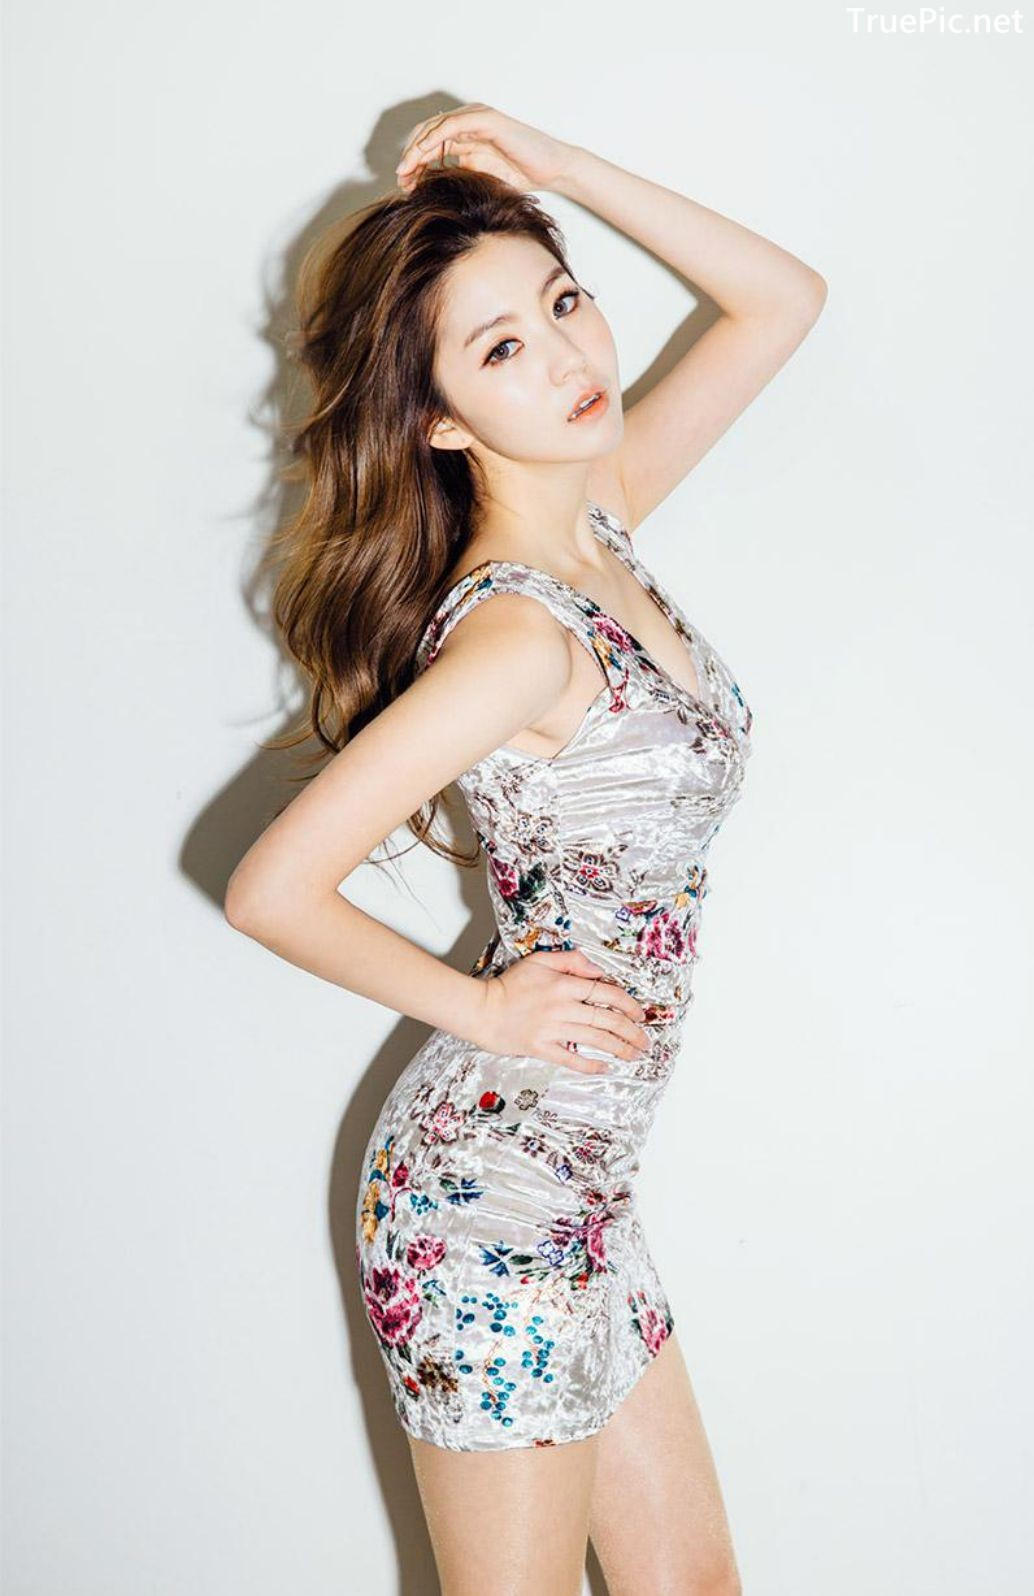 Image-Korean-Fashion-Model-Lee-Chae-Eun-Ready-For-The-Party-Evening-Wear-TruePic.net- Picture-1